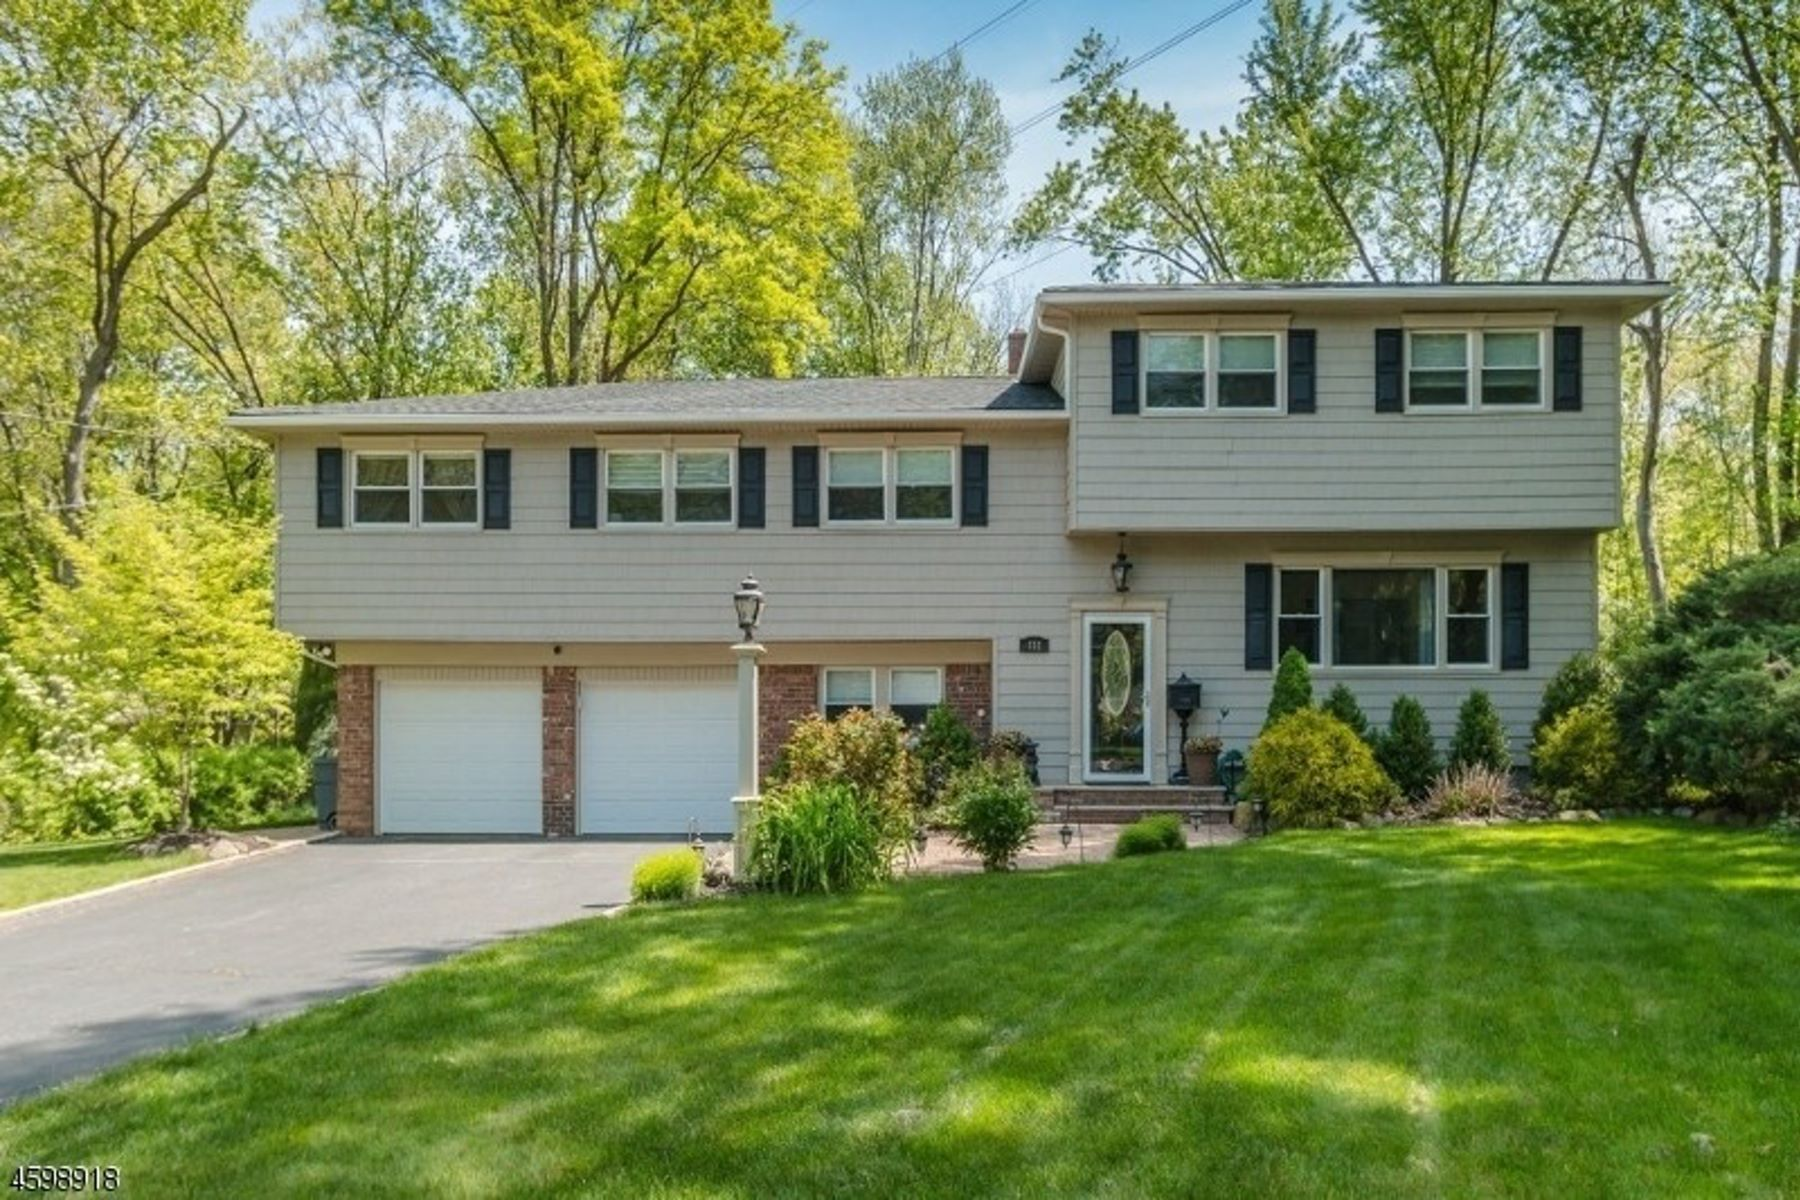 Single Family Homes for Sale at Updated Bright And Sunny 132 Robbins Avenue Berkeley Heights, New Jersey 07922 United States